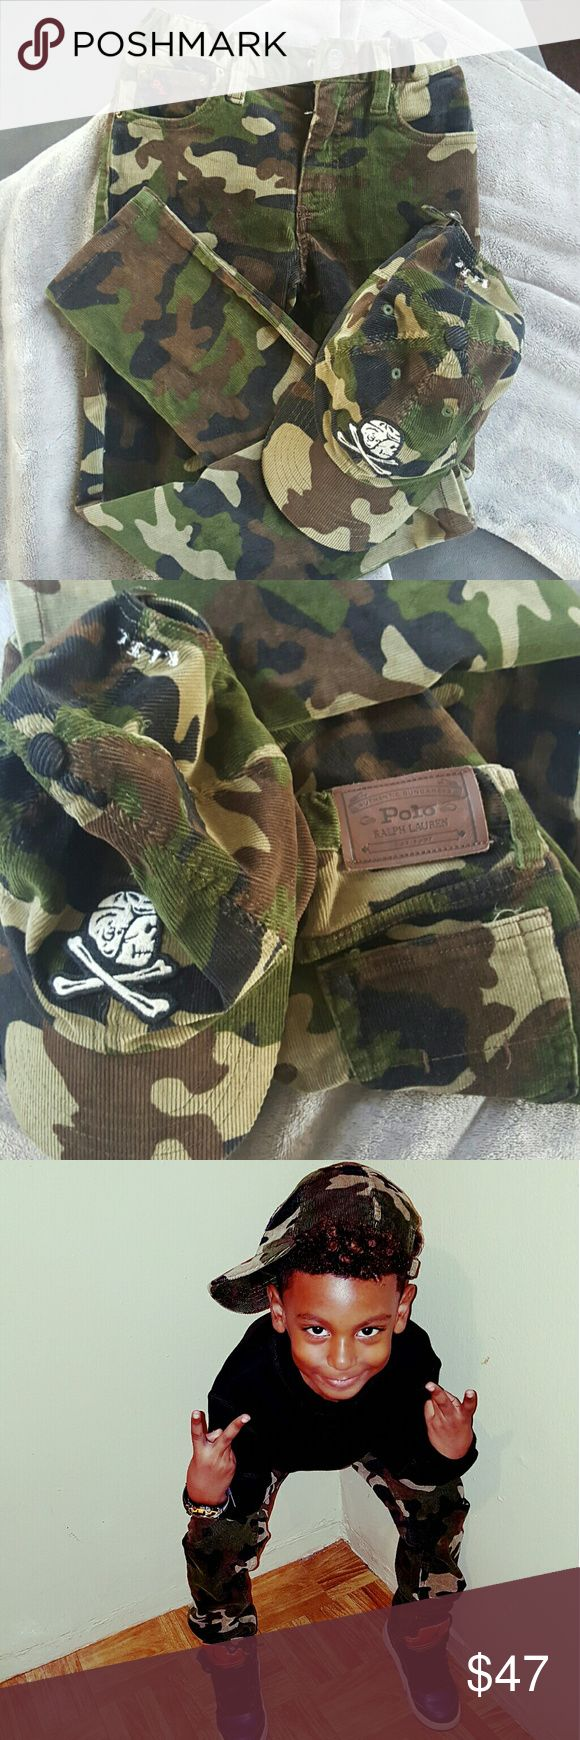 POLO RALPH LAUREN BOYS PANT AND CAP SET POLO RALPH LAUREN  BOYS PANTS SZ 6 CAP sz 4-7 CAMOUFLAGE PRINT CORDUROY MATERIAL TRUE TO SZ WORN A FEW TIMES EXCELLENT CONDITION!!!!!!! Polo by Ralph Lauren Other